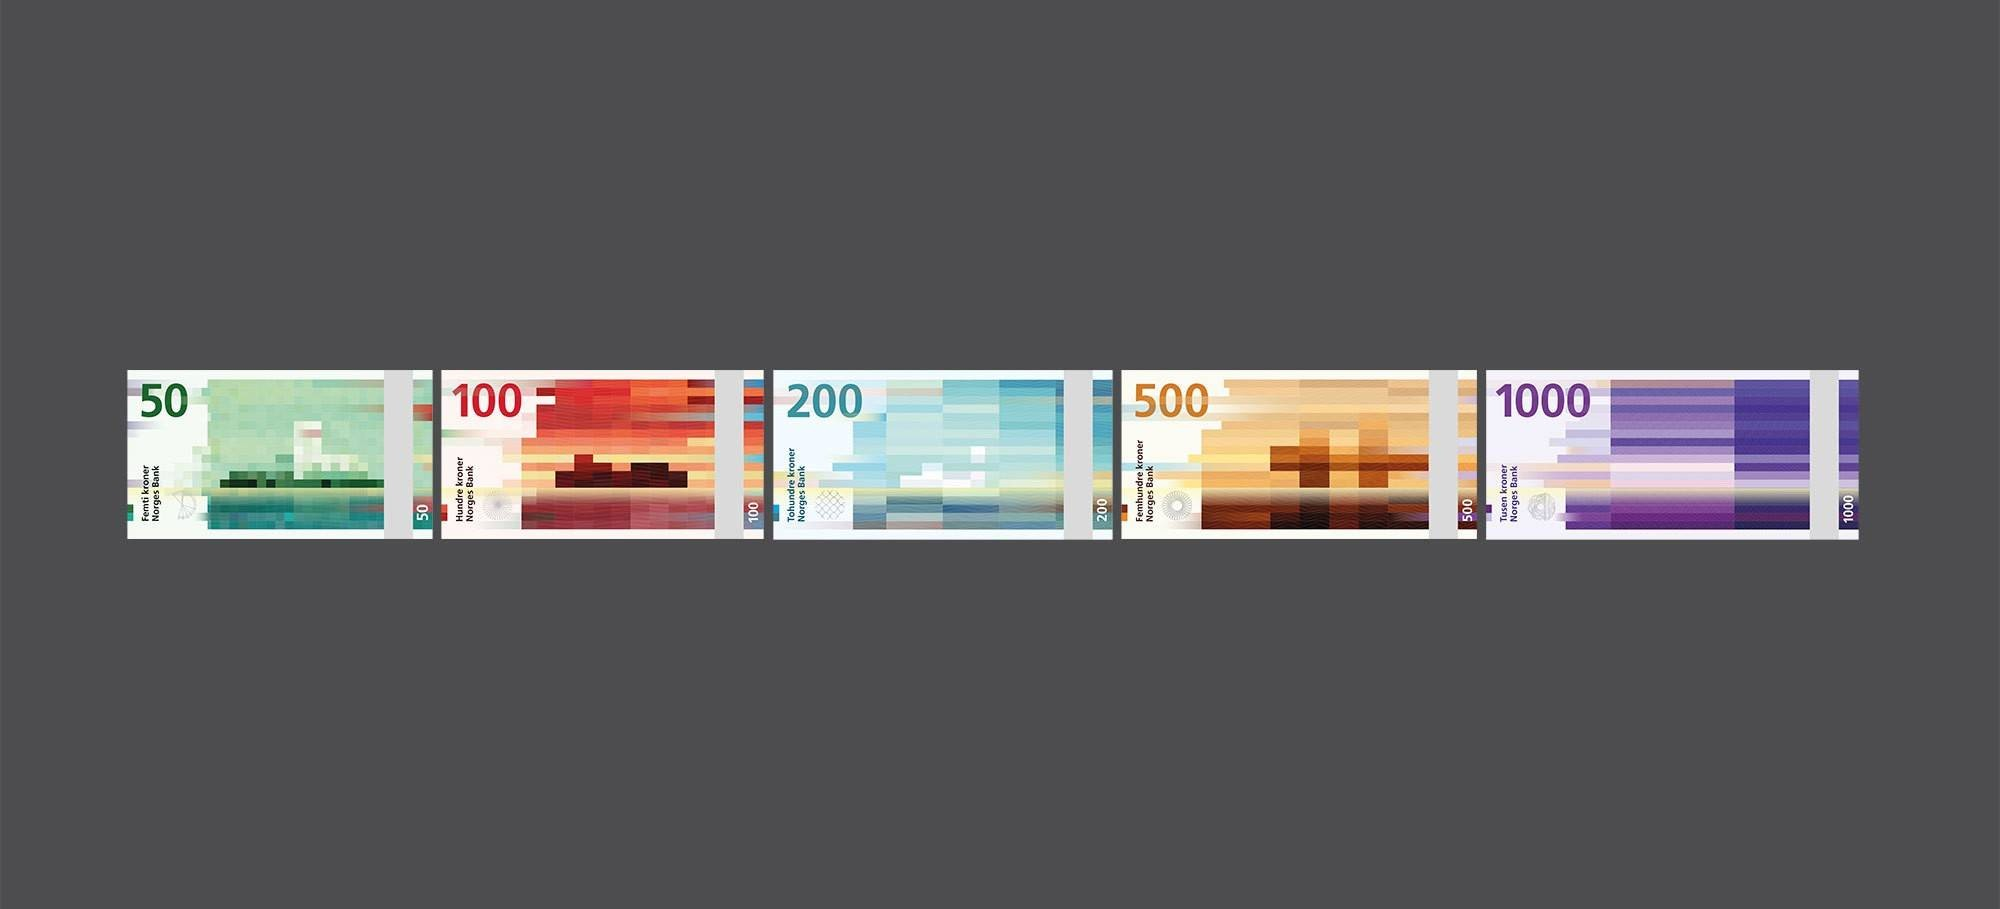 Snøhetta Designs New Banknotes for Norway